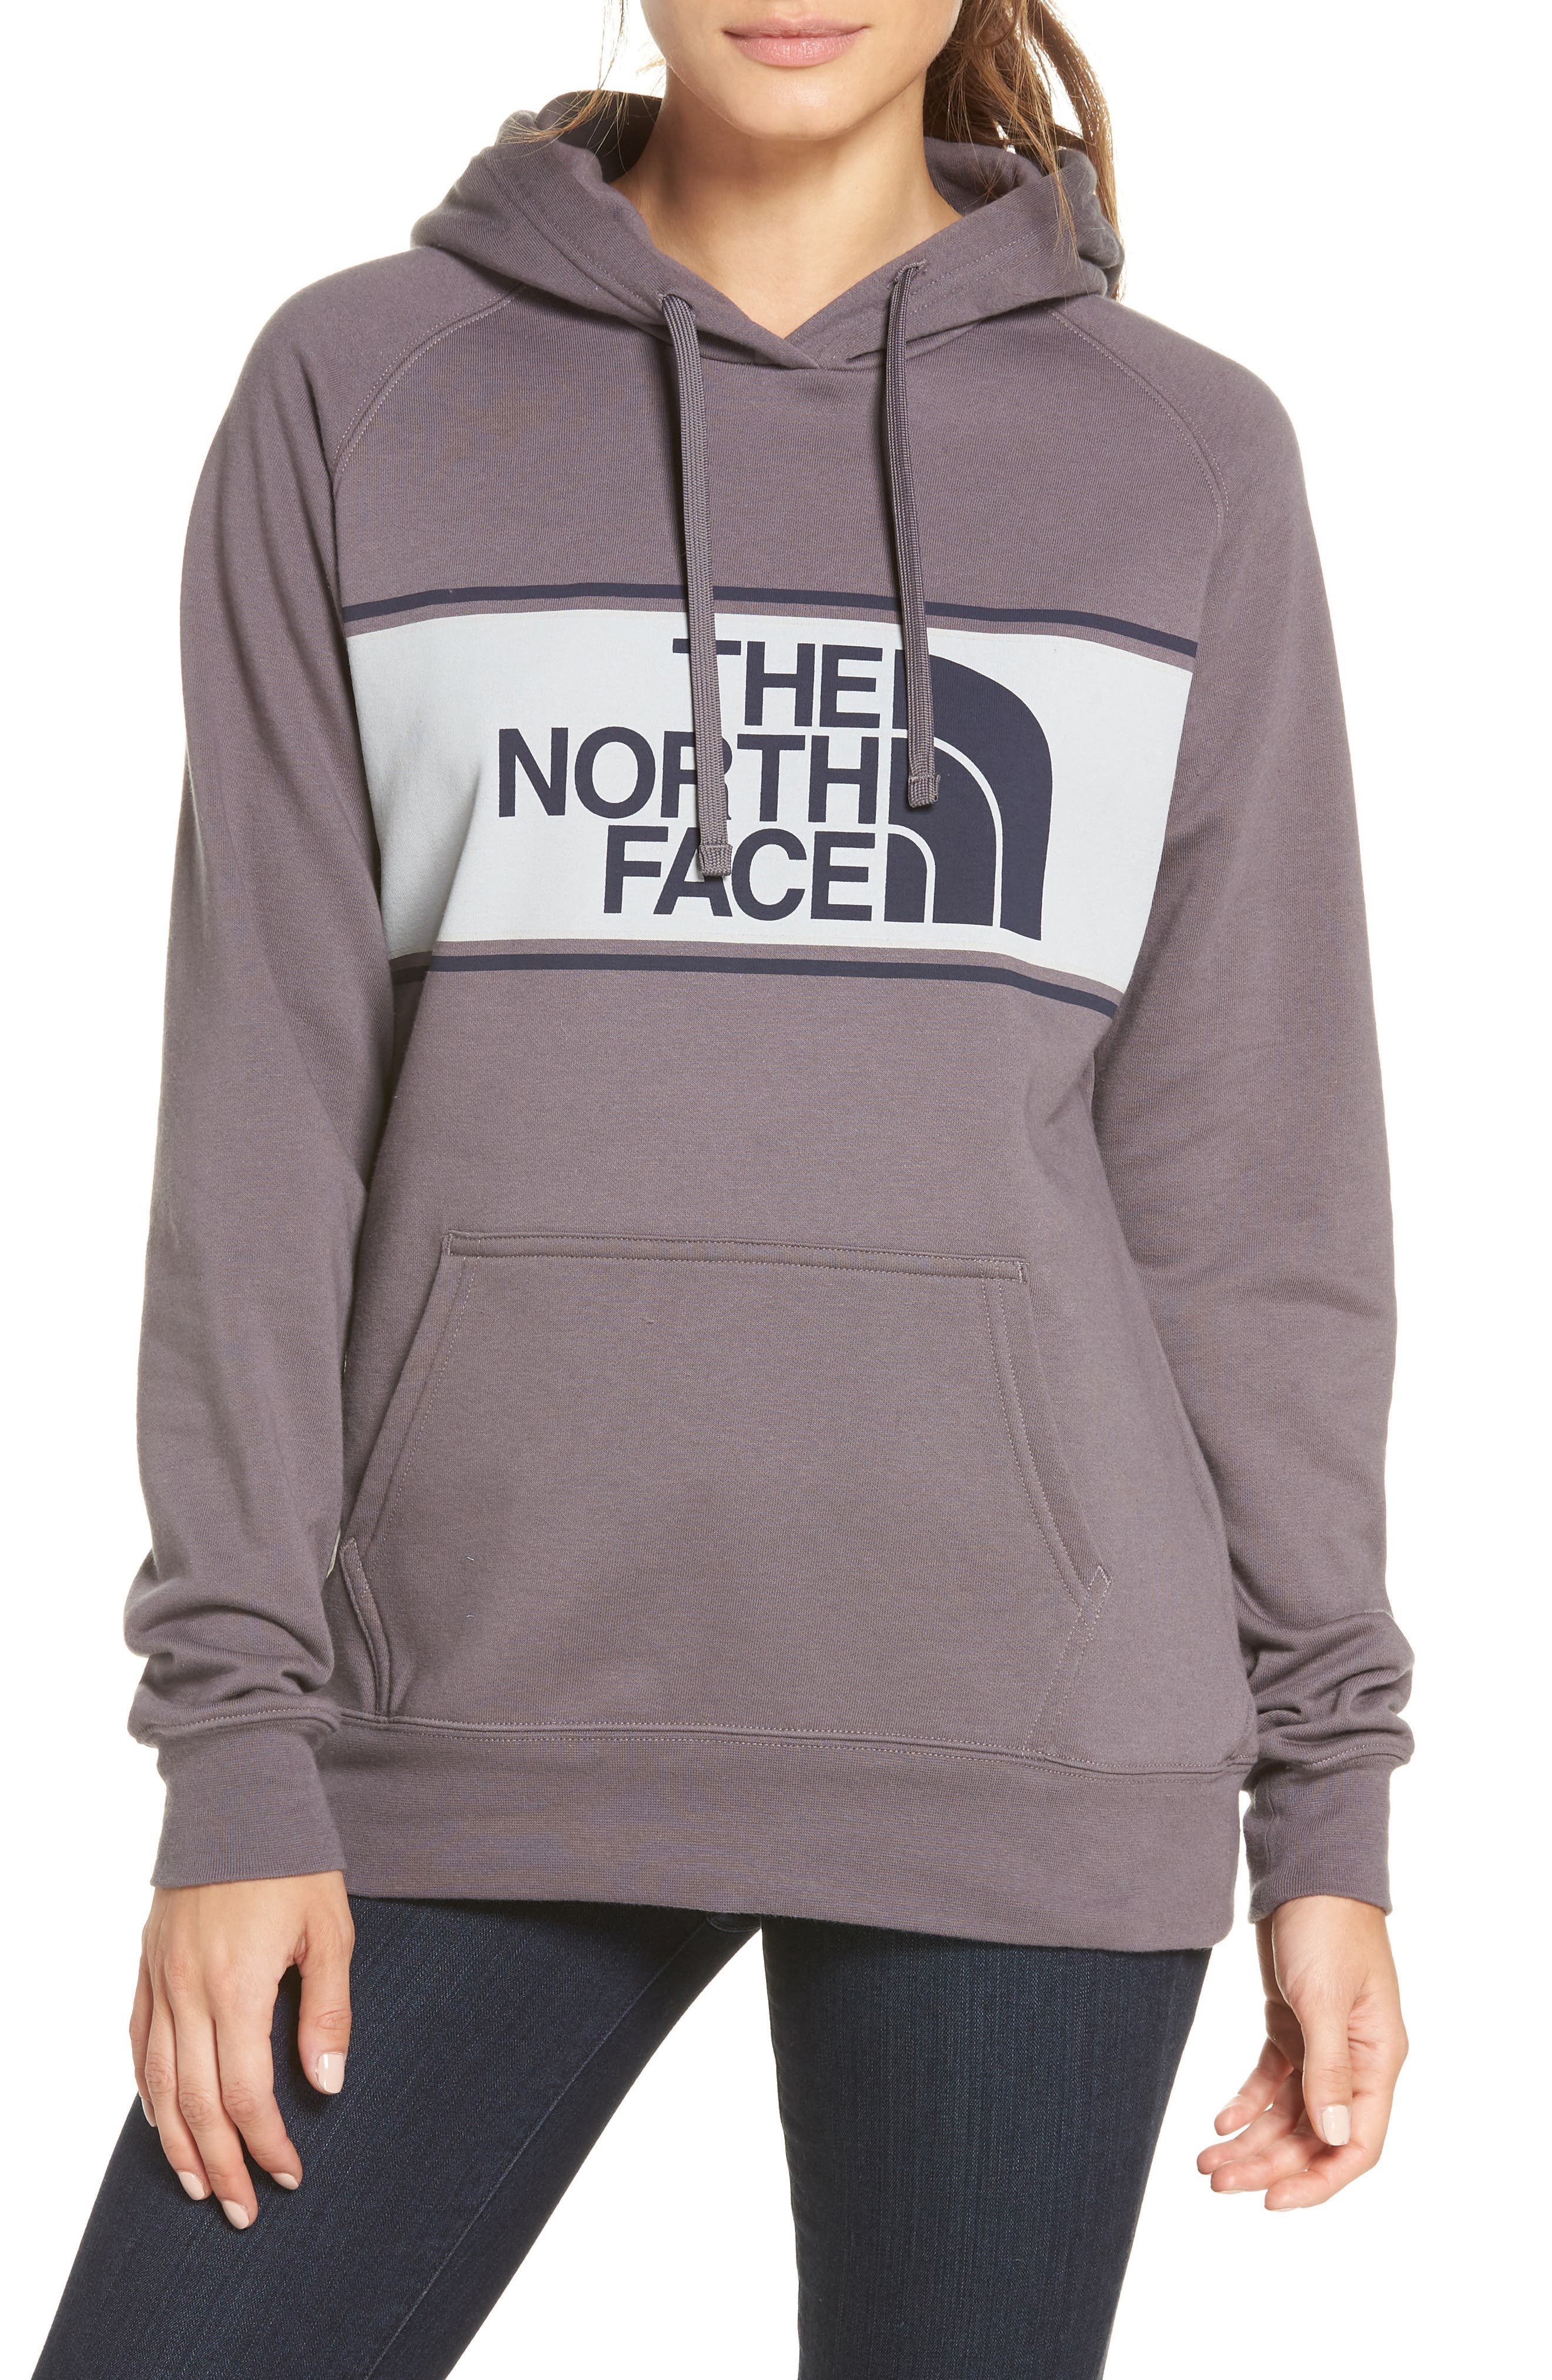 THE NORTH FACE,                             Edge to Edge Logo Hoodie Sweatshirt,                             Main thumbnail 1, color,                             023